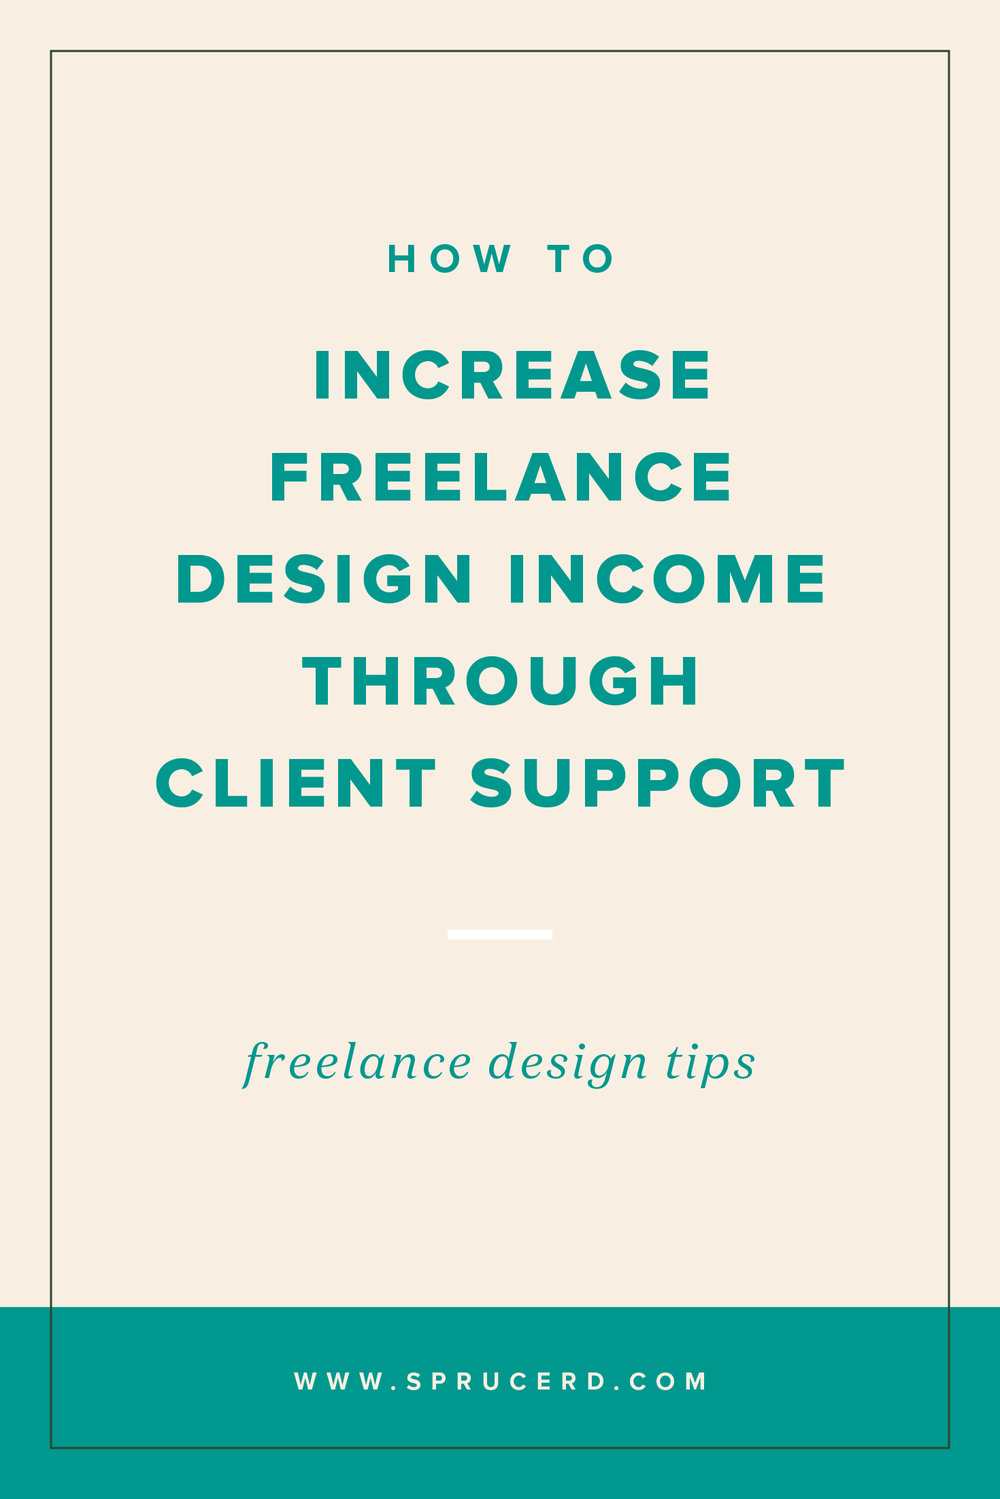 How to increase freelance design income through client support | Spruce Rd.